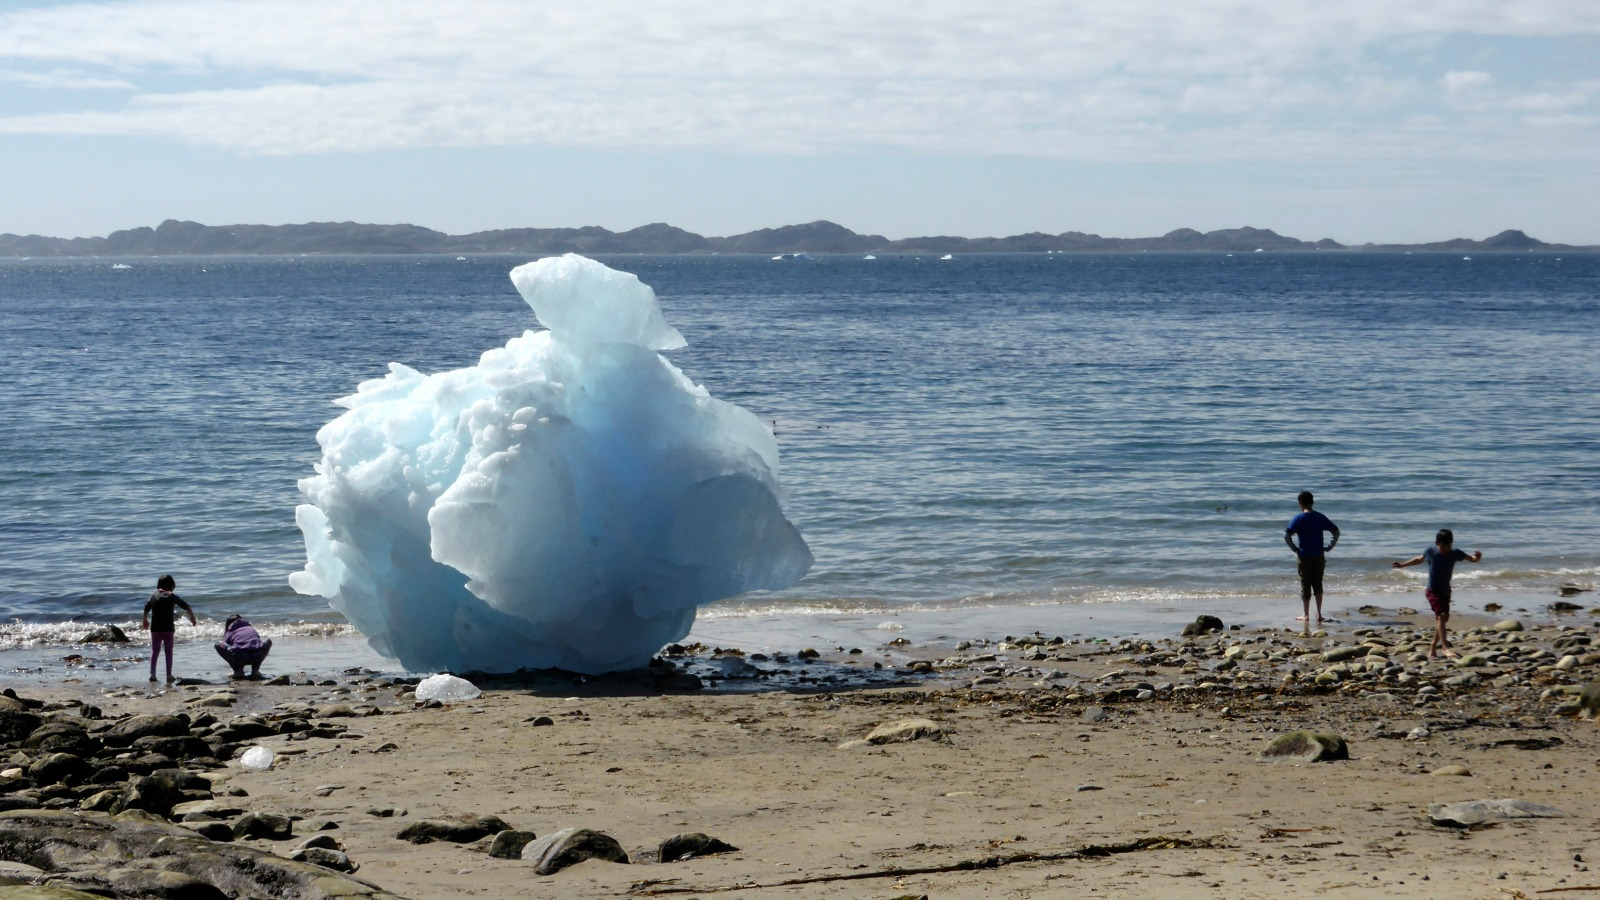 Children play next to icebergs on the beach in Nuuk, Greenland.